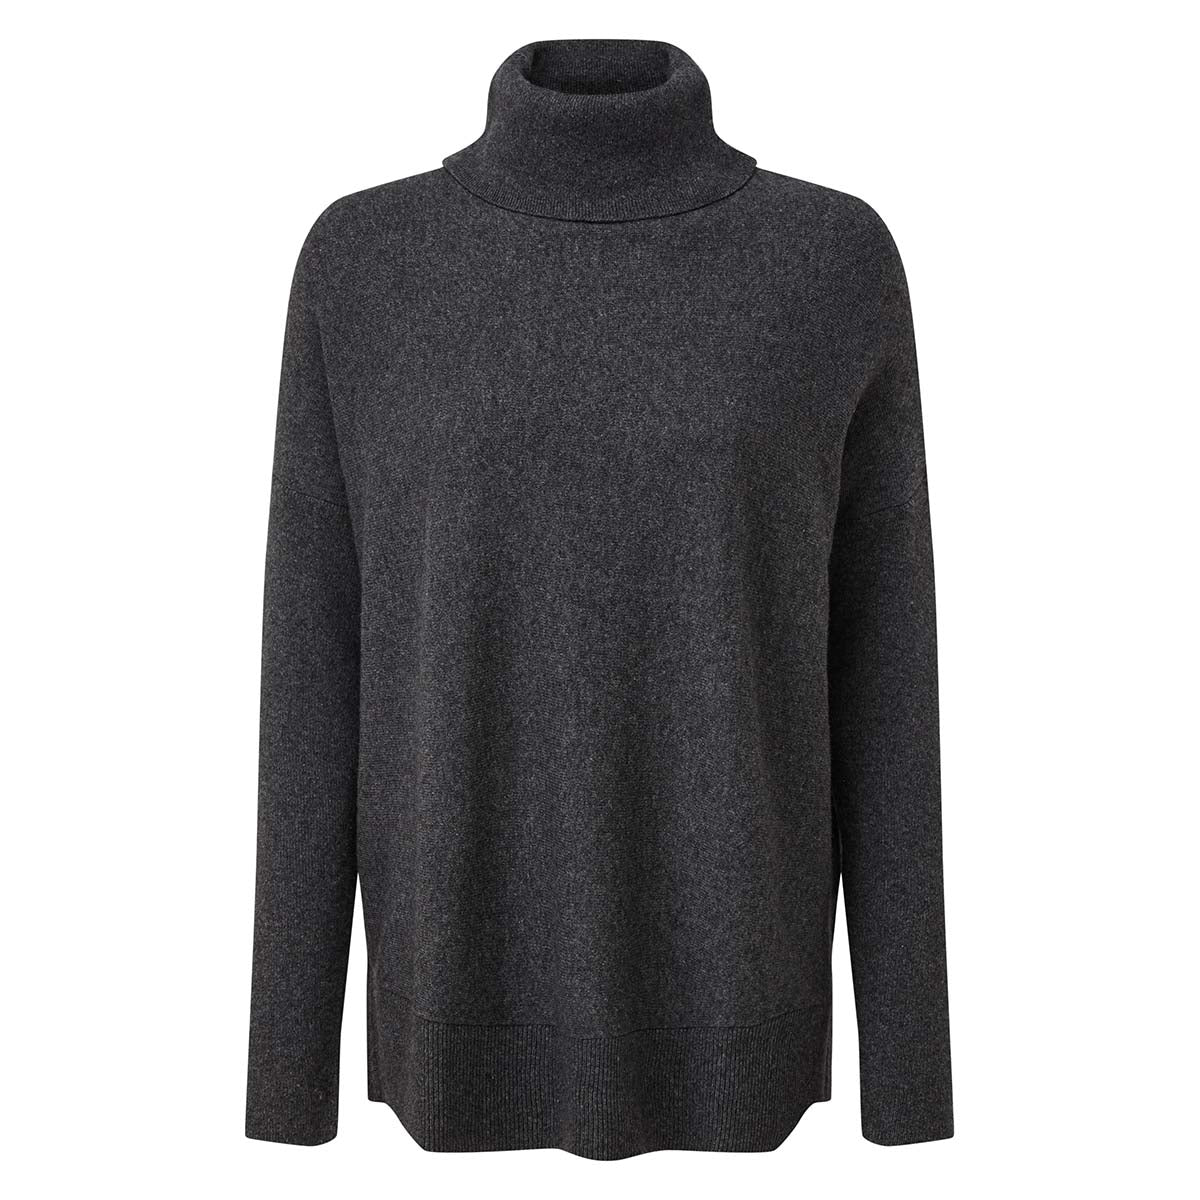 Imogen Womens Light Roll Neck Jumper - Dark Grey Marl image 4